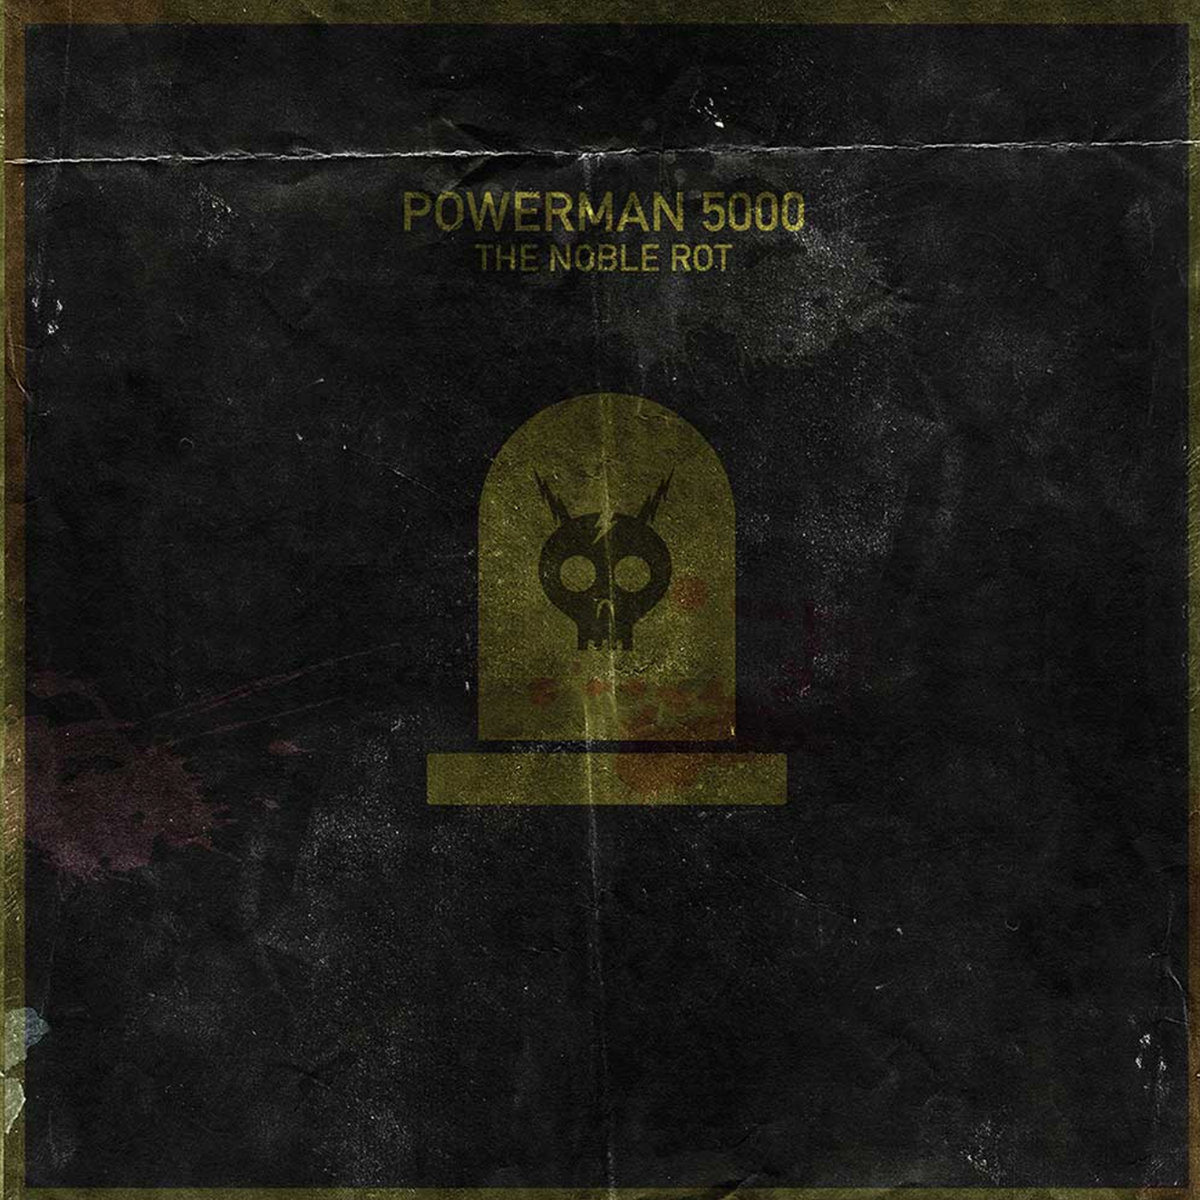 Powerman 5000 – The Noble Rot